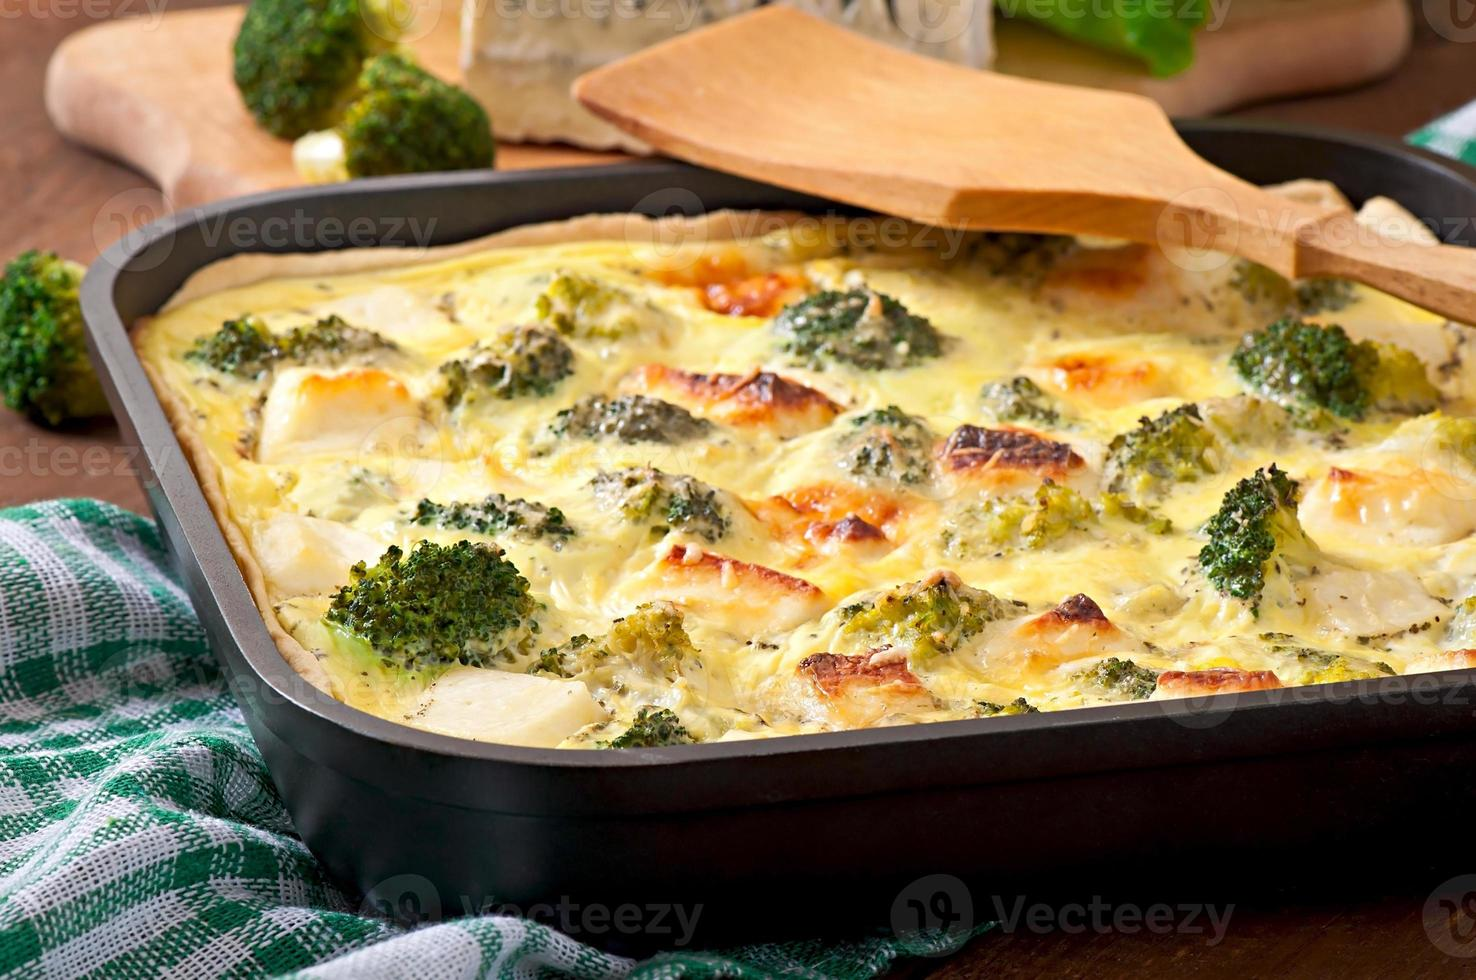 quiche au brocoli et fromage feta photo